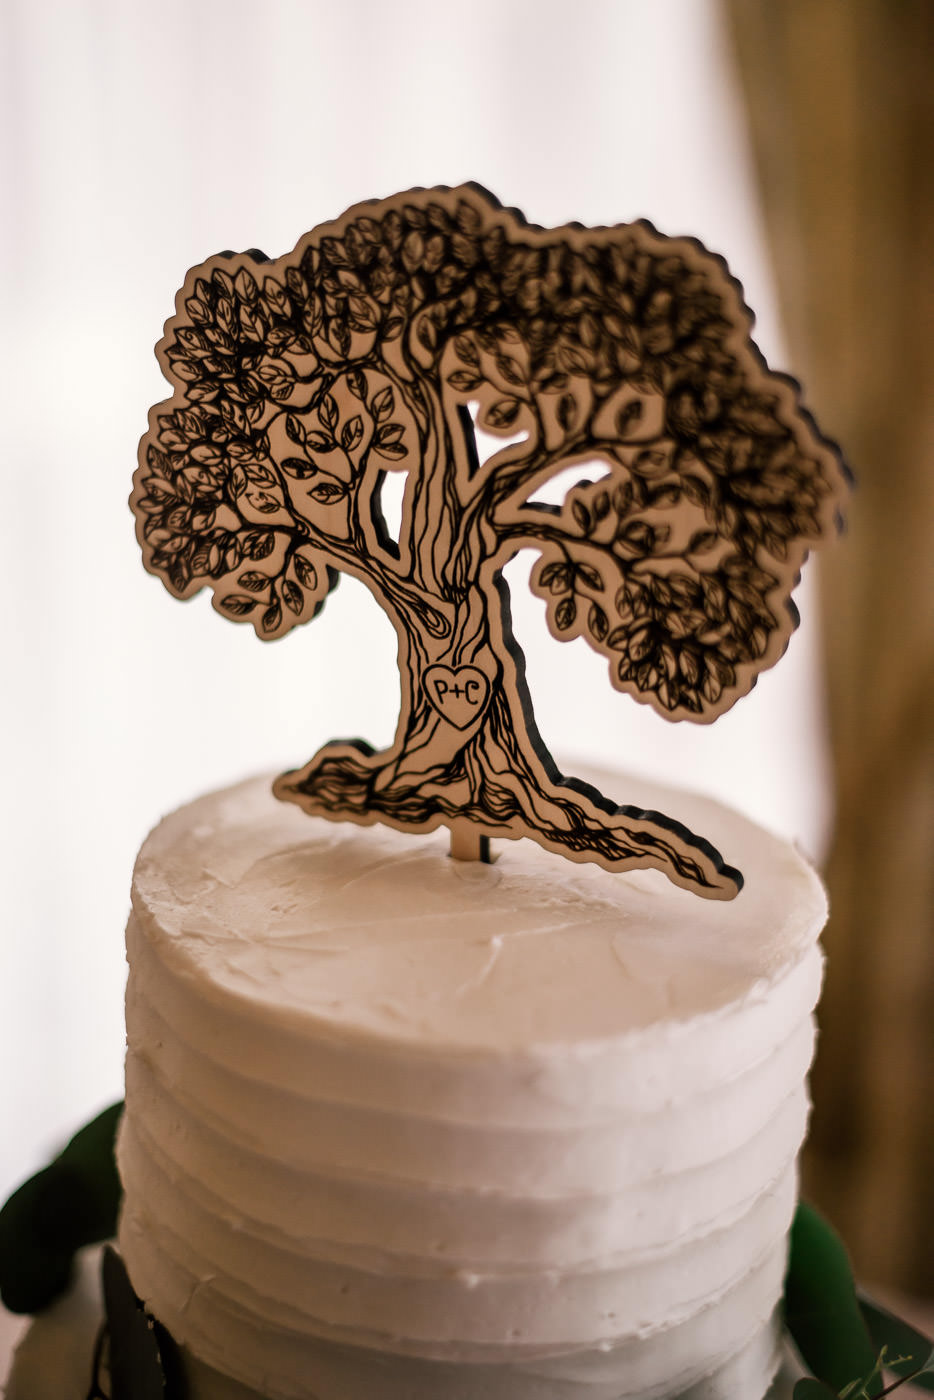 Wooden tree cake topper with couples initials carved in the trunk.